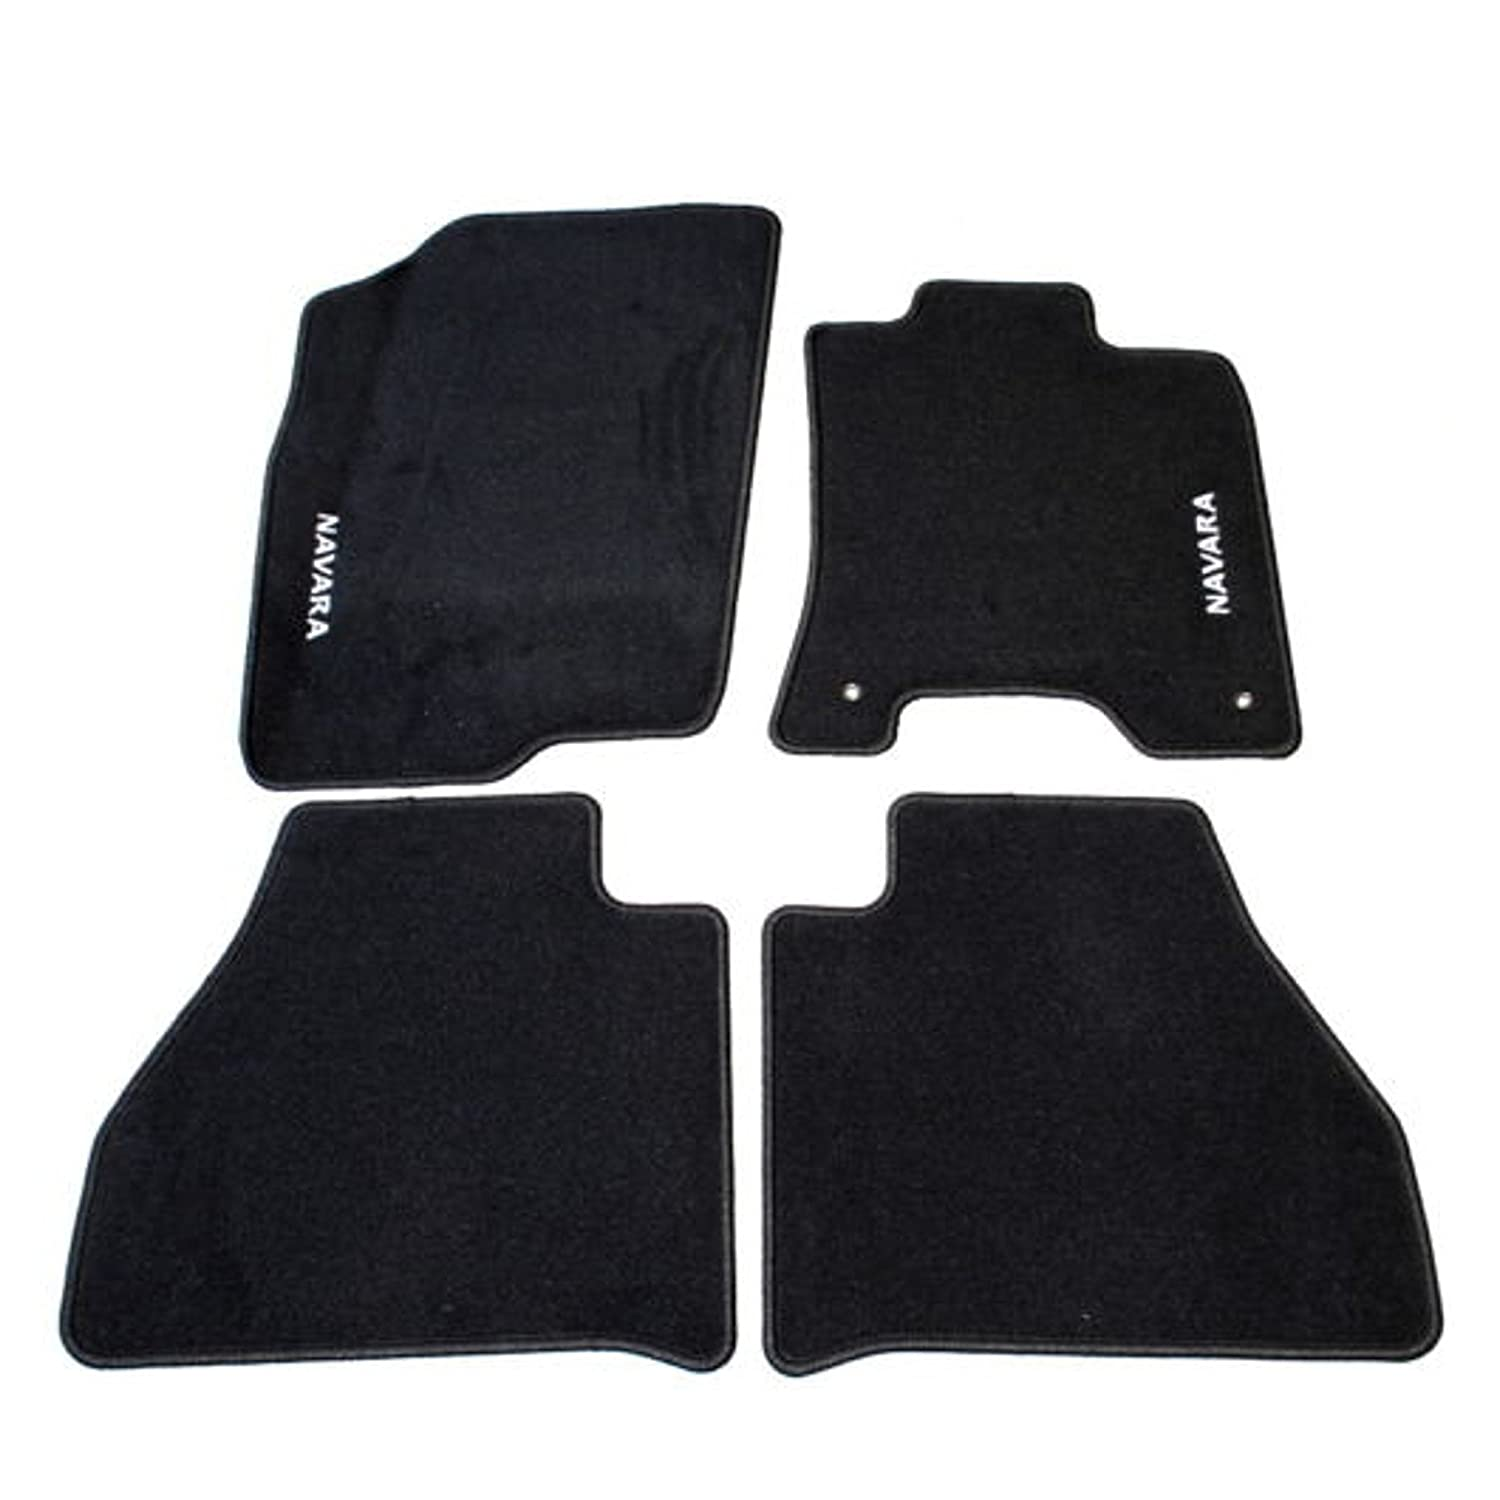 Transit 2006-2012 with double front passenger seat Quality Tailored Car Mats